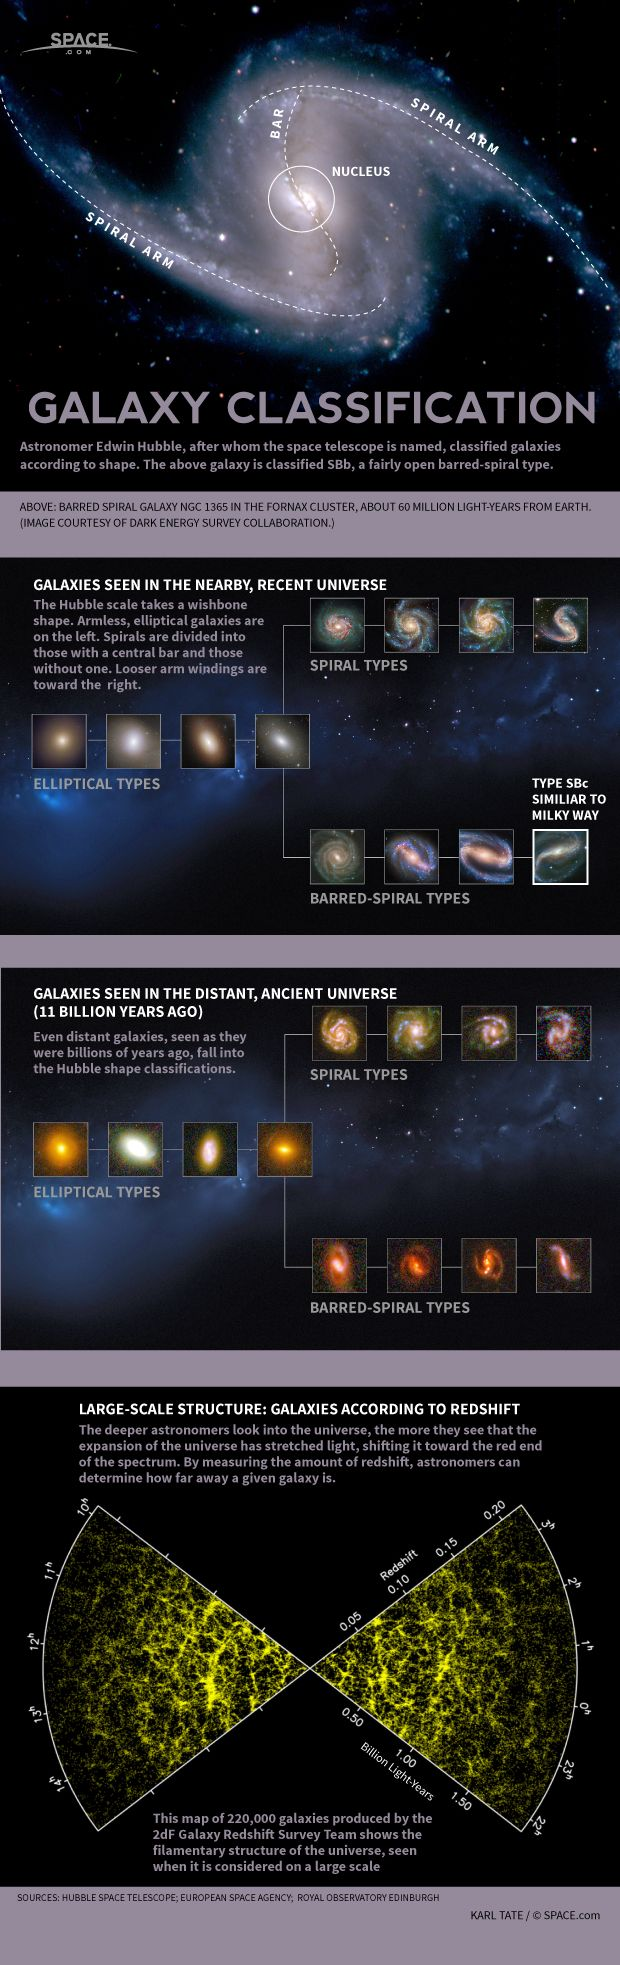 Structure of 'Baby Milky Way' Galaxy Seen for the First Time by Nola Taylor Redd, Space.com Contributor | February 03, 2014 | LiveScience Jorgenson and her team used the Keck Telescope in Hawaii to obtain the first spatially resolved images of these young, normal galaxies.